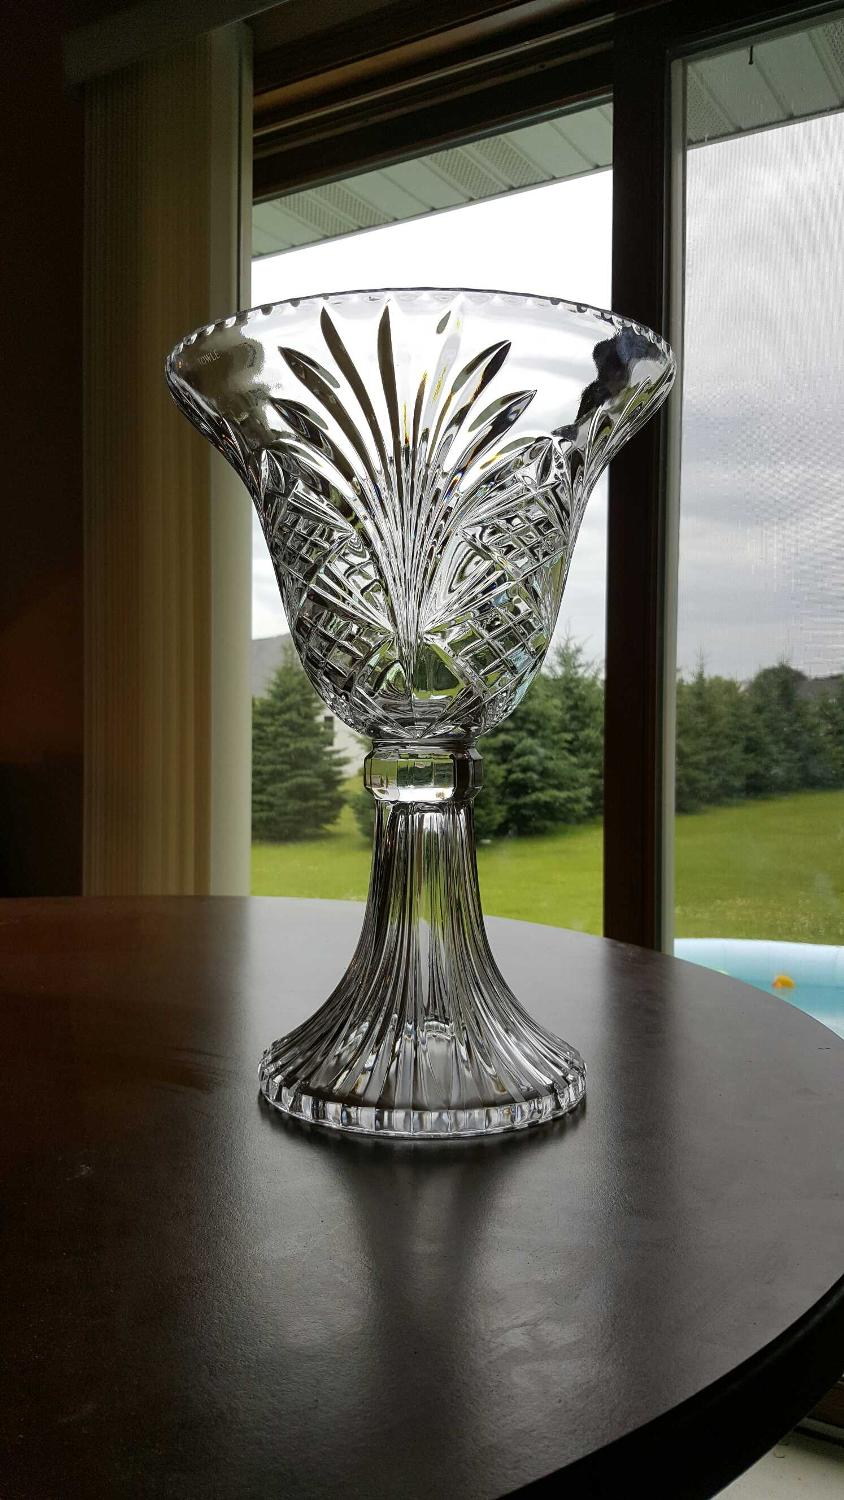 Best towle crystal vase reduced for sale in appleton wisconsin best towle crystal vase reduced for sale in appleton wisconsin for 2018 floridaeventfo Image collections